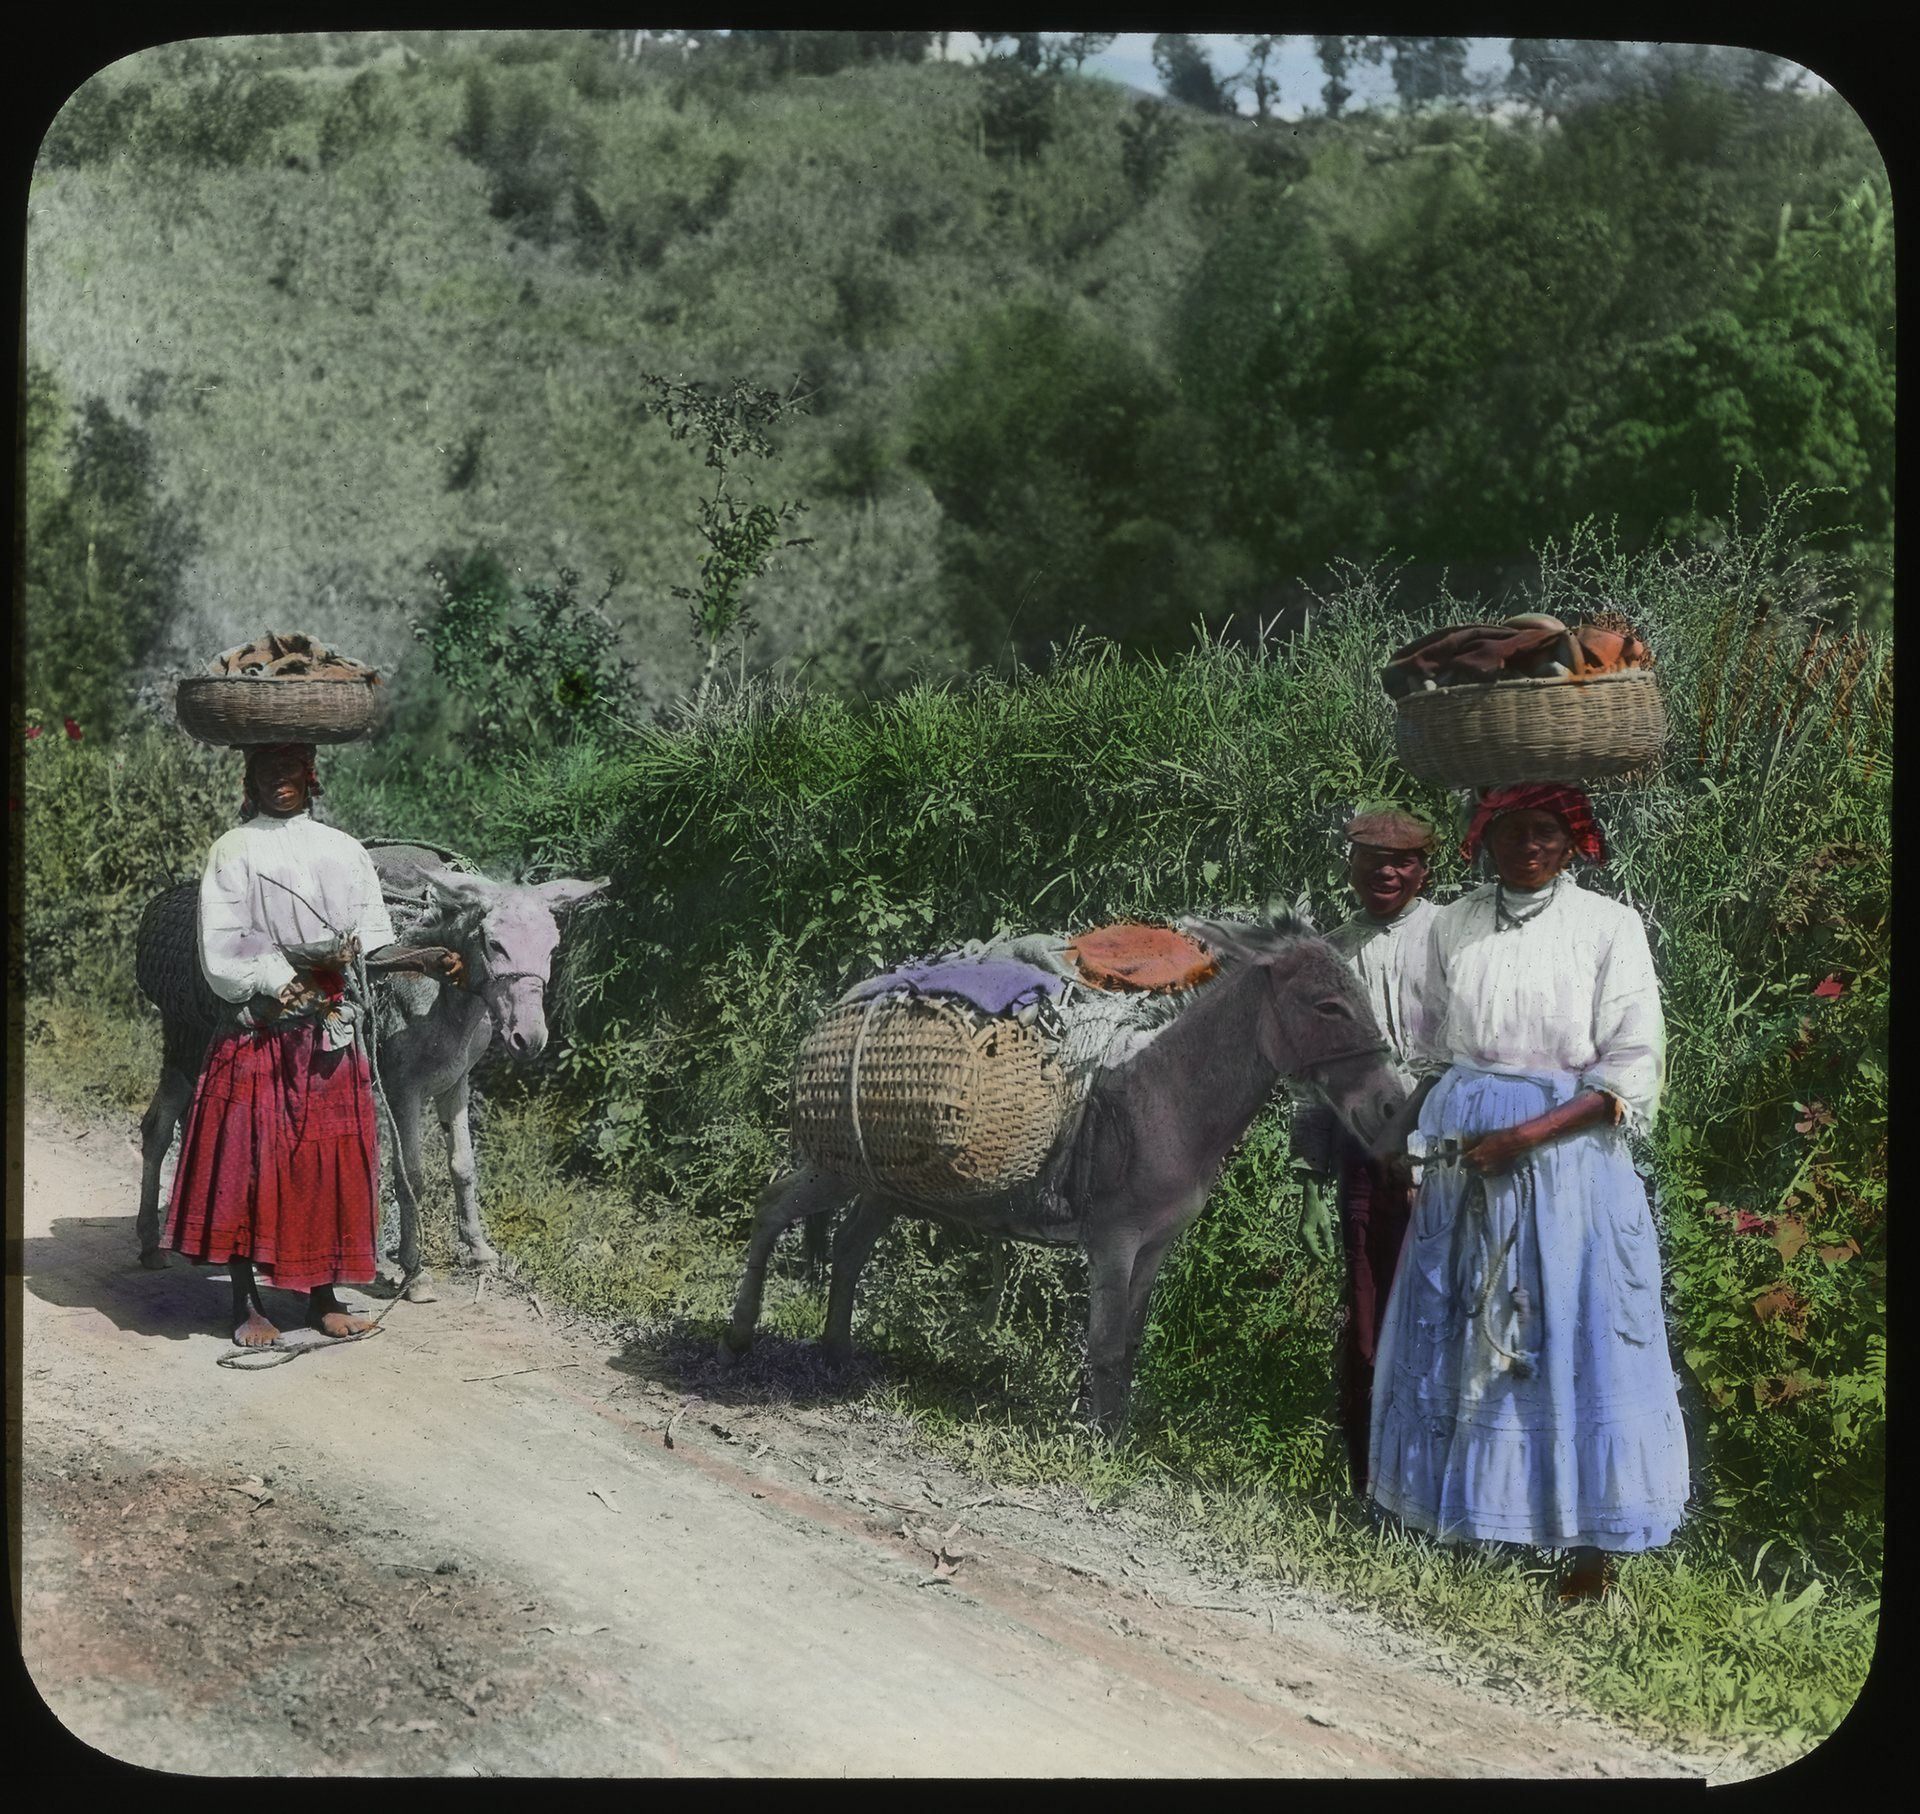 An archive of images from 19th-century Jamaica shows a country freed from the bonds of slavery but still under white rule